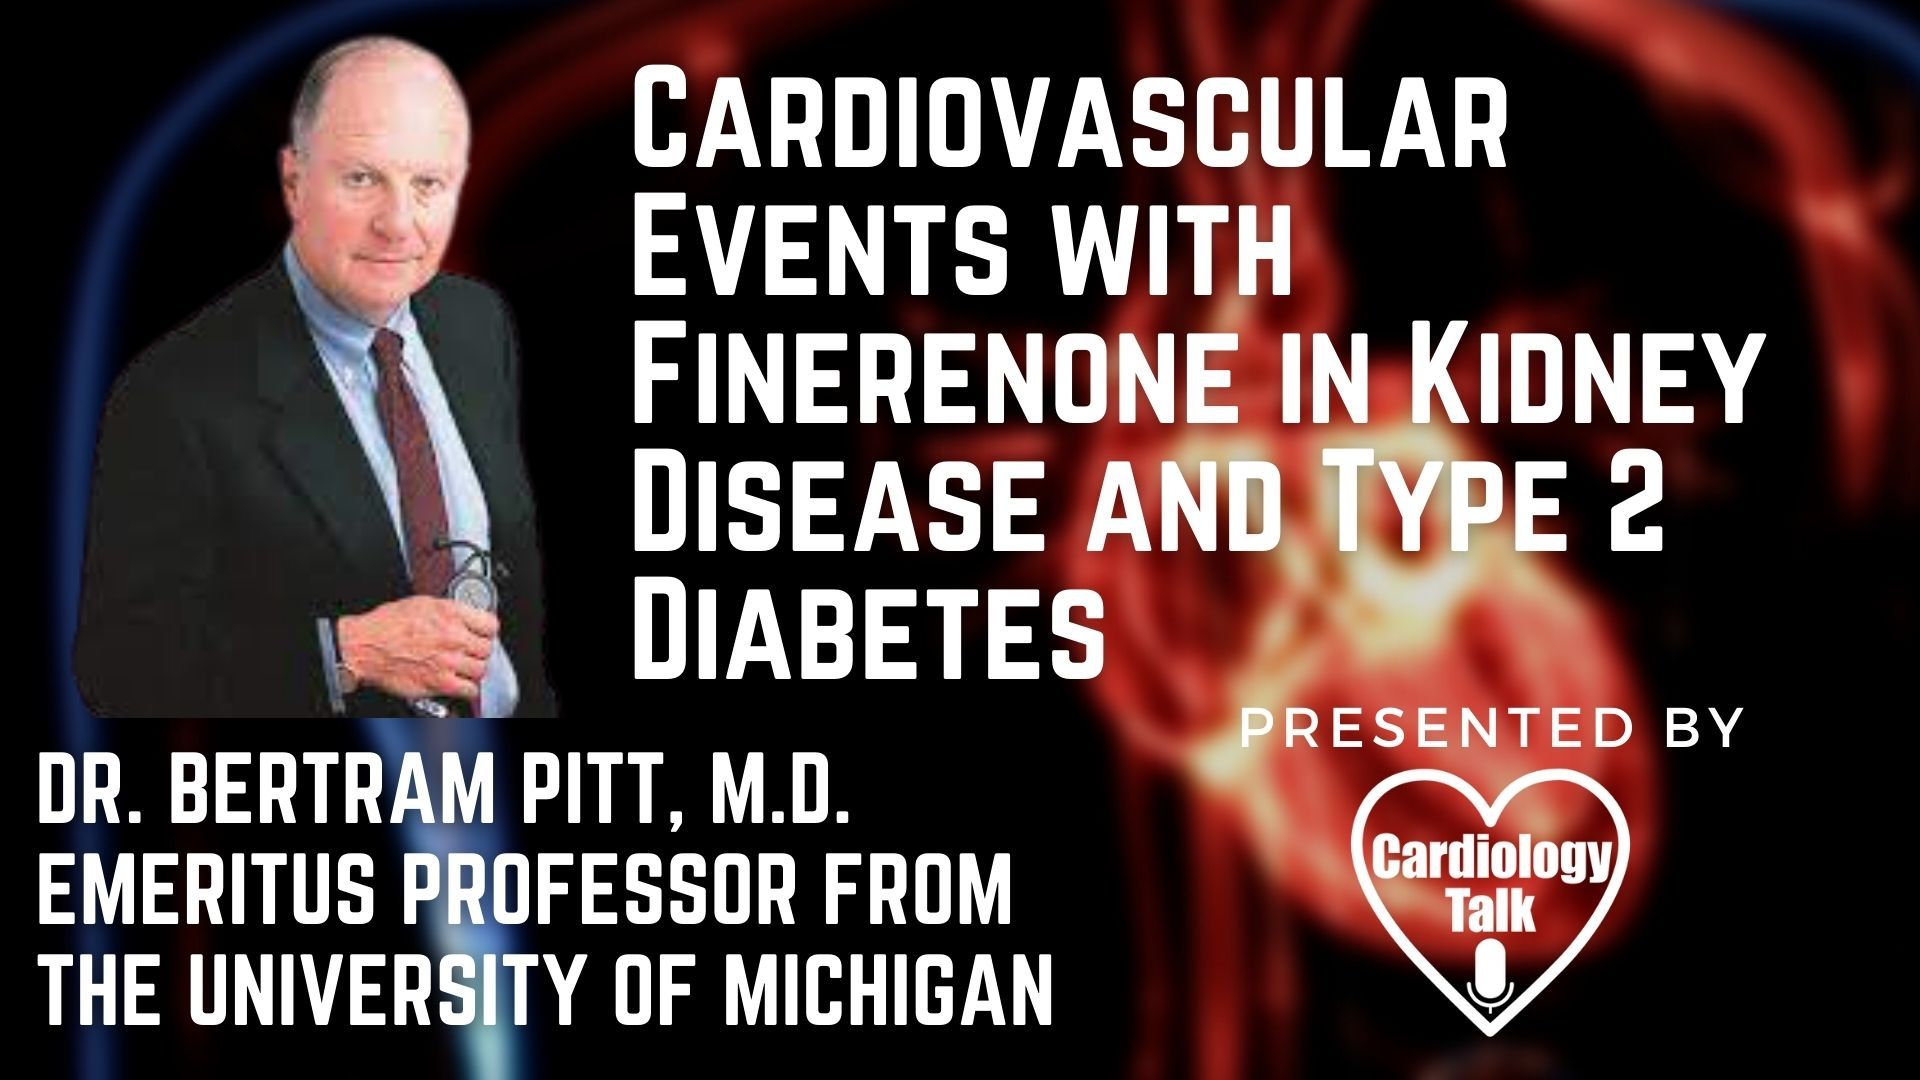 Bertram Pitt, M.D. - @UMich @UMichCardiology #CardiovascularEvents #Cardiology #Research Cardiovascular Events with Finerenone in Kidney Disease and Type 2 Diabetes